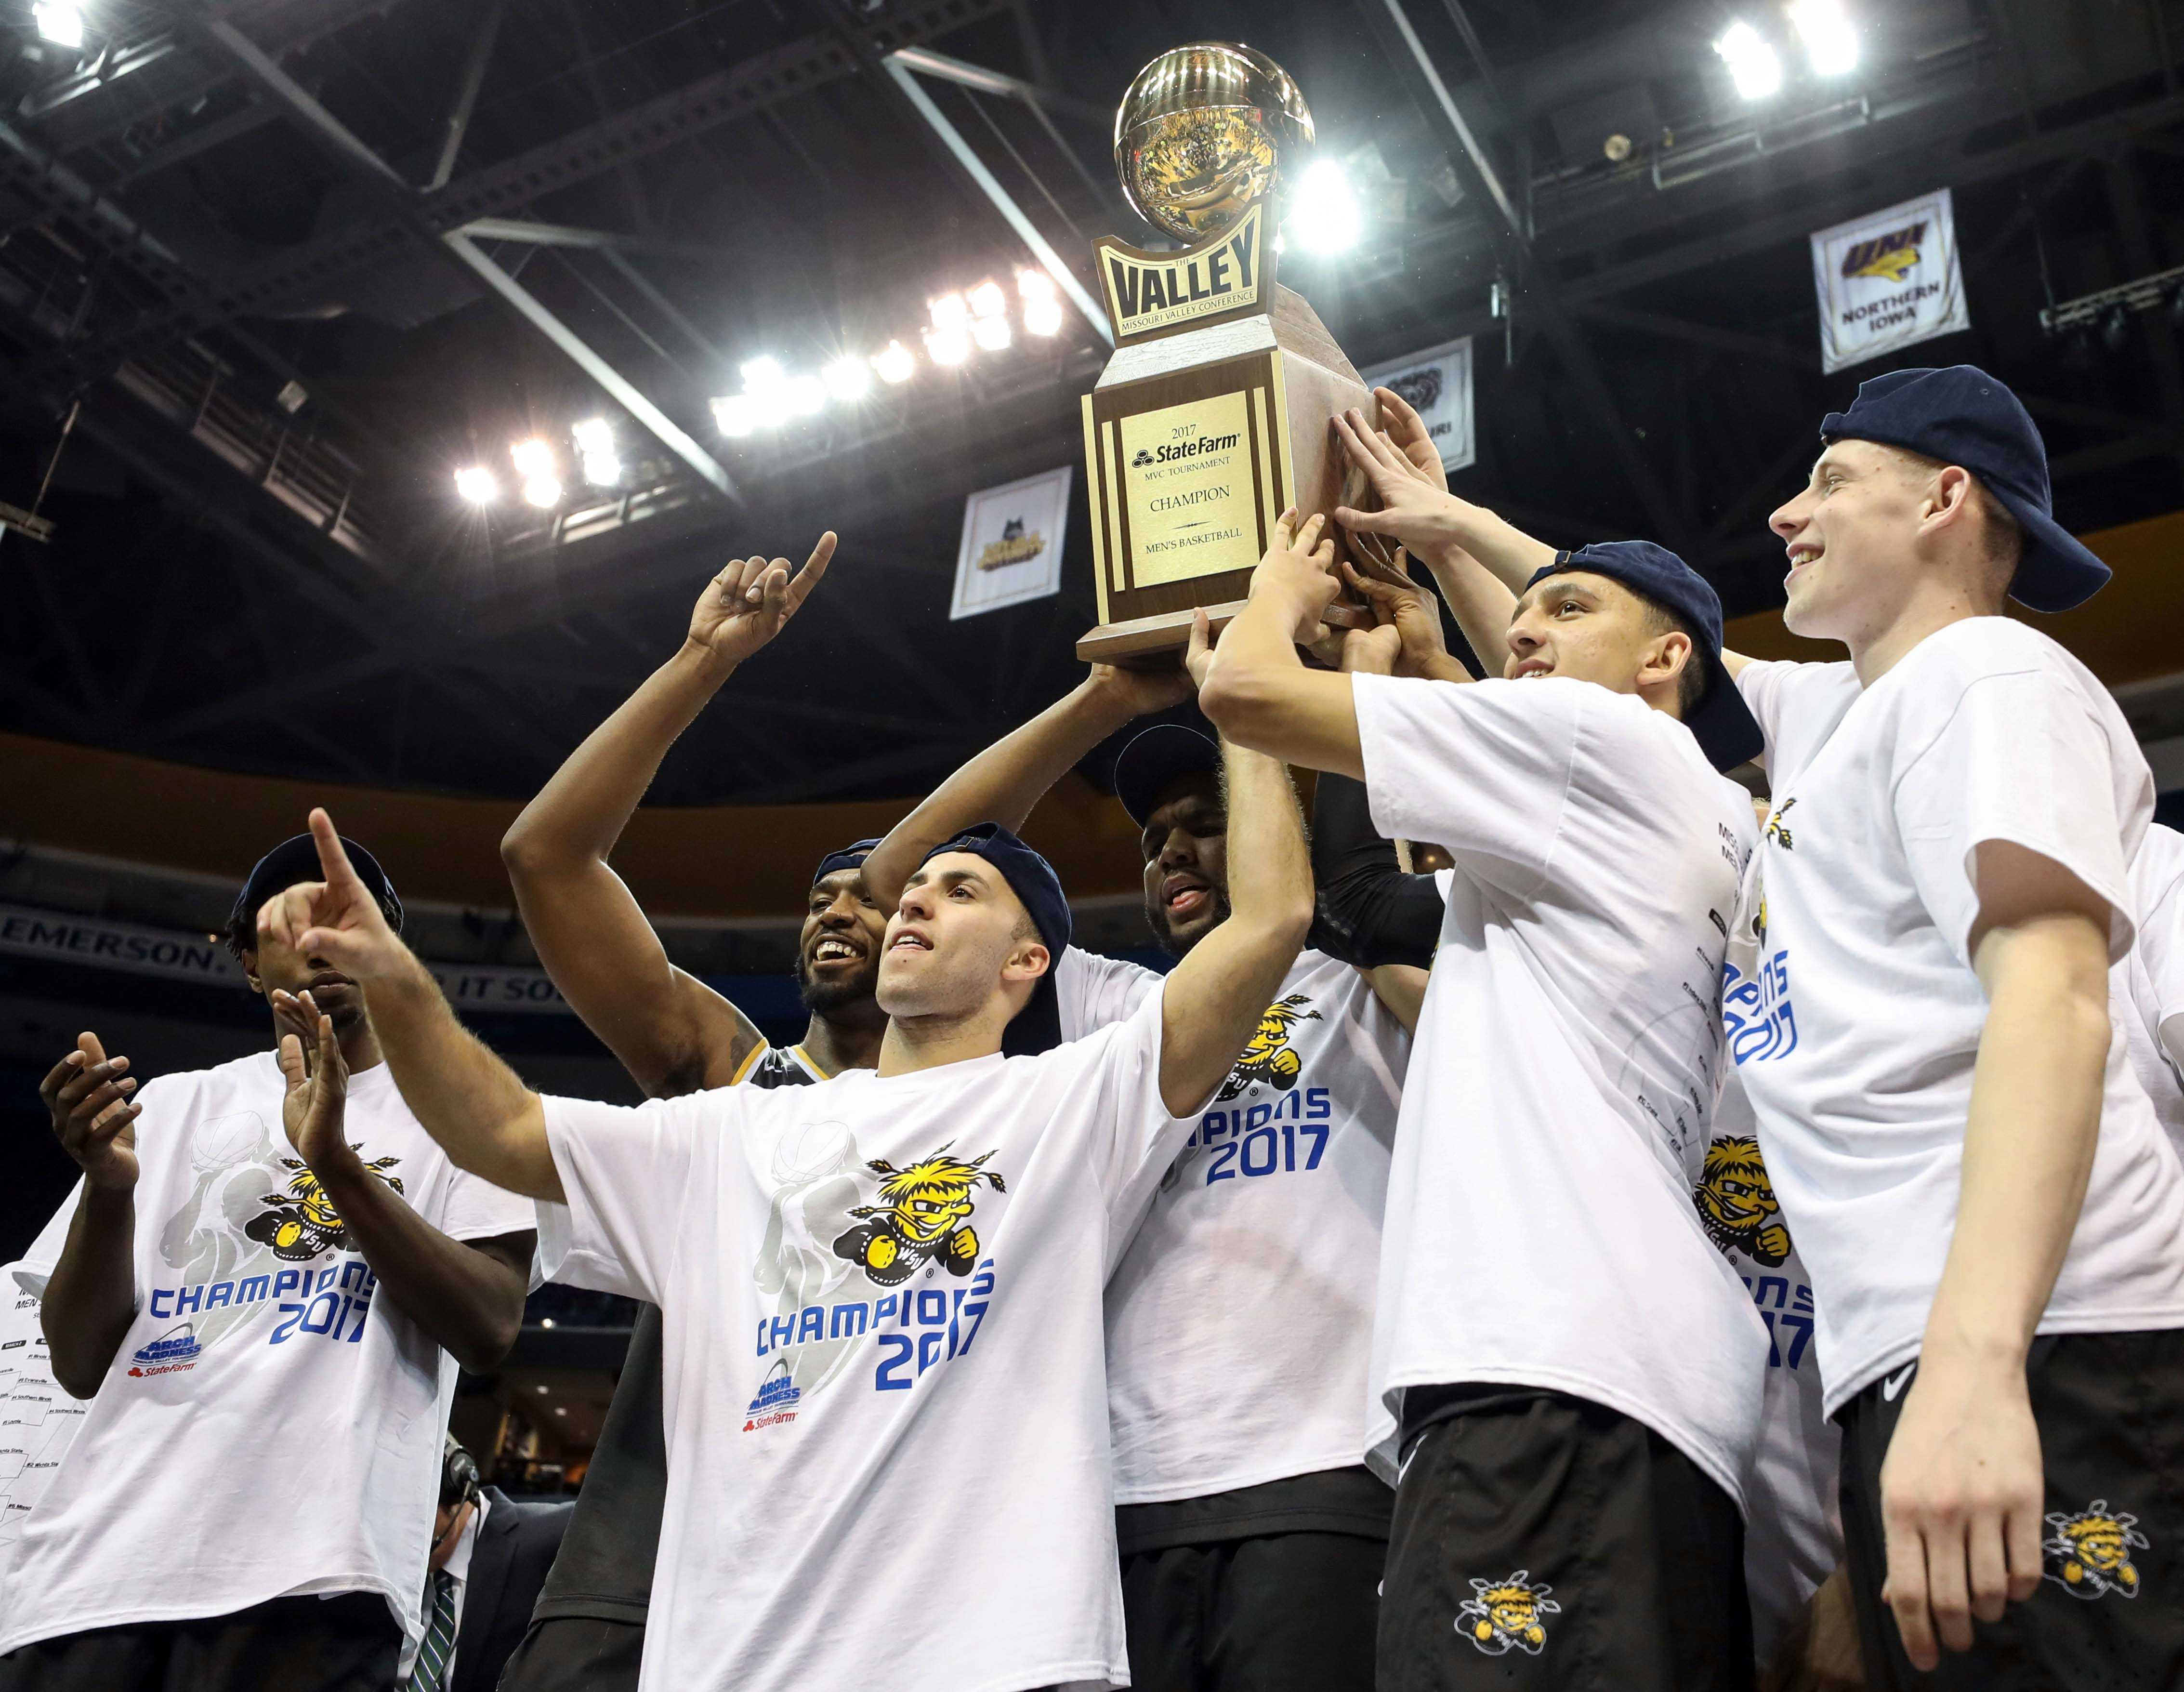 Wichita State secures an at-large bid to the NCAA Tournament winning the Missouri Valley Conference Tournament for the second time in Gregg Marshall's ten seasons at Wichita State.